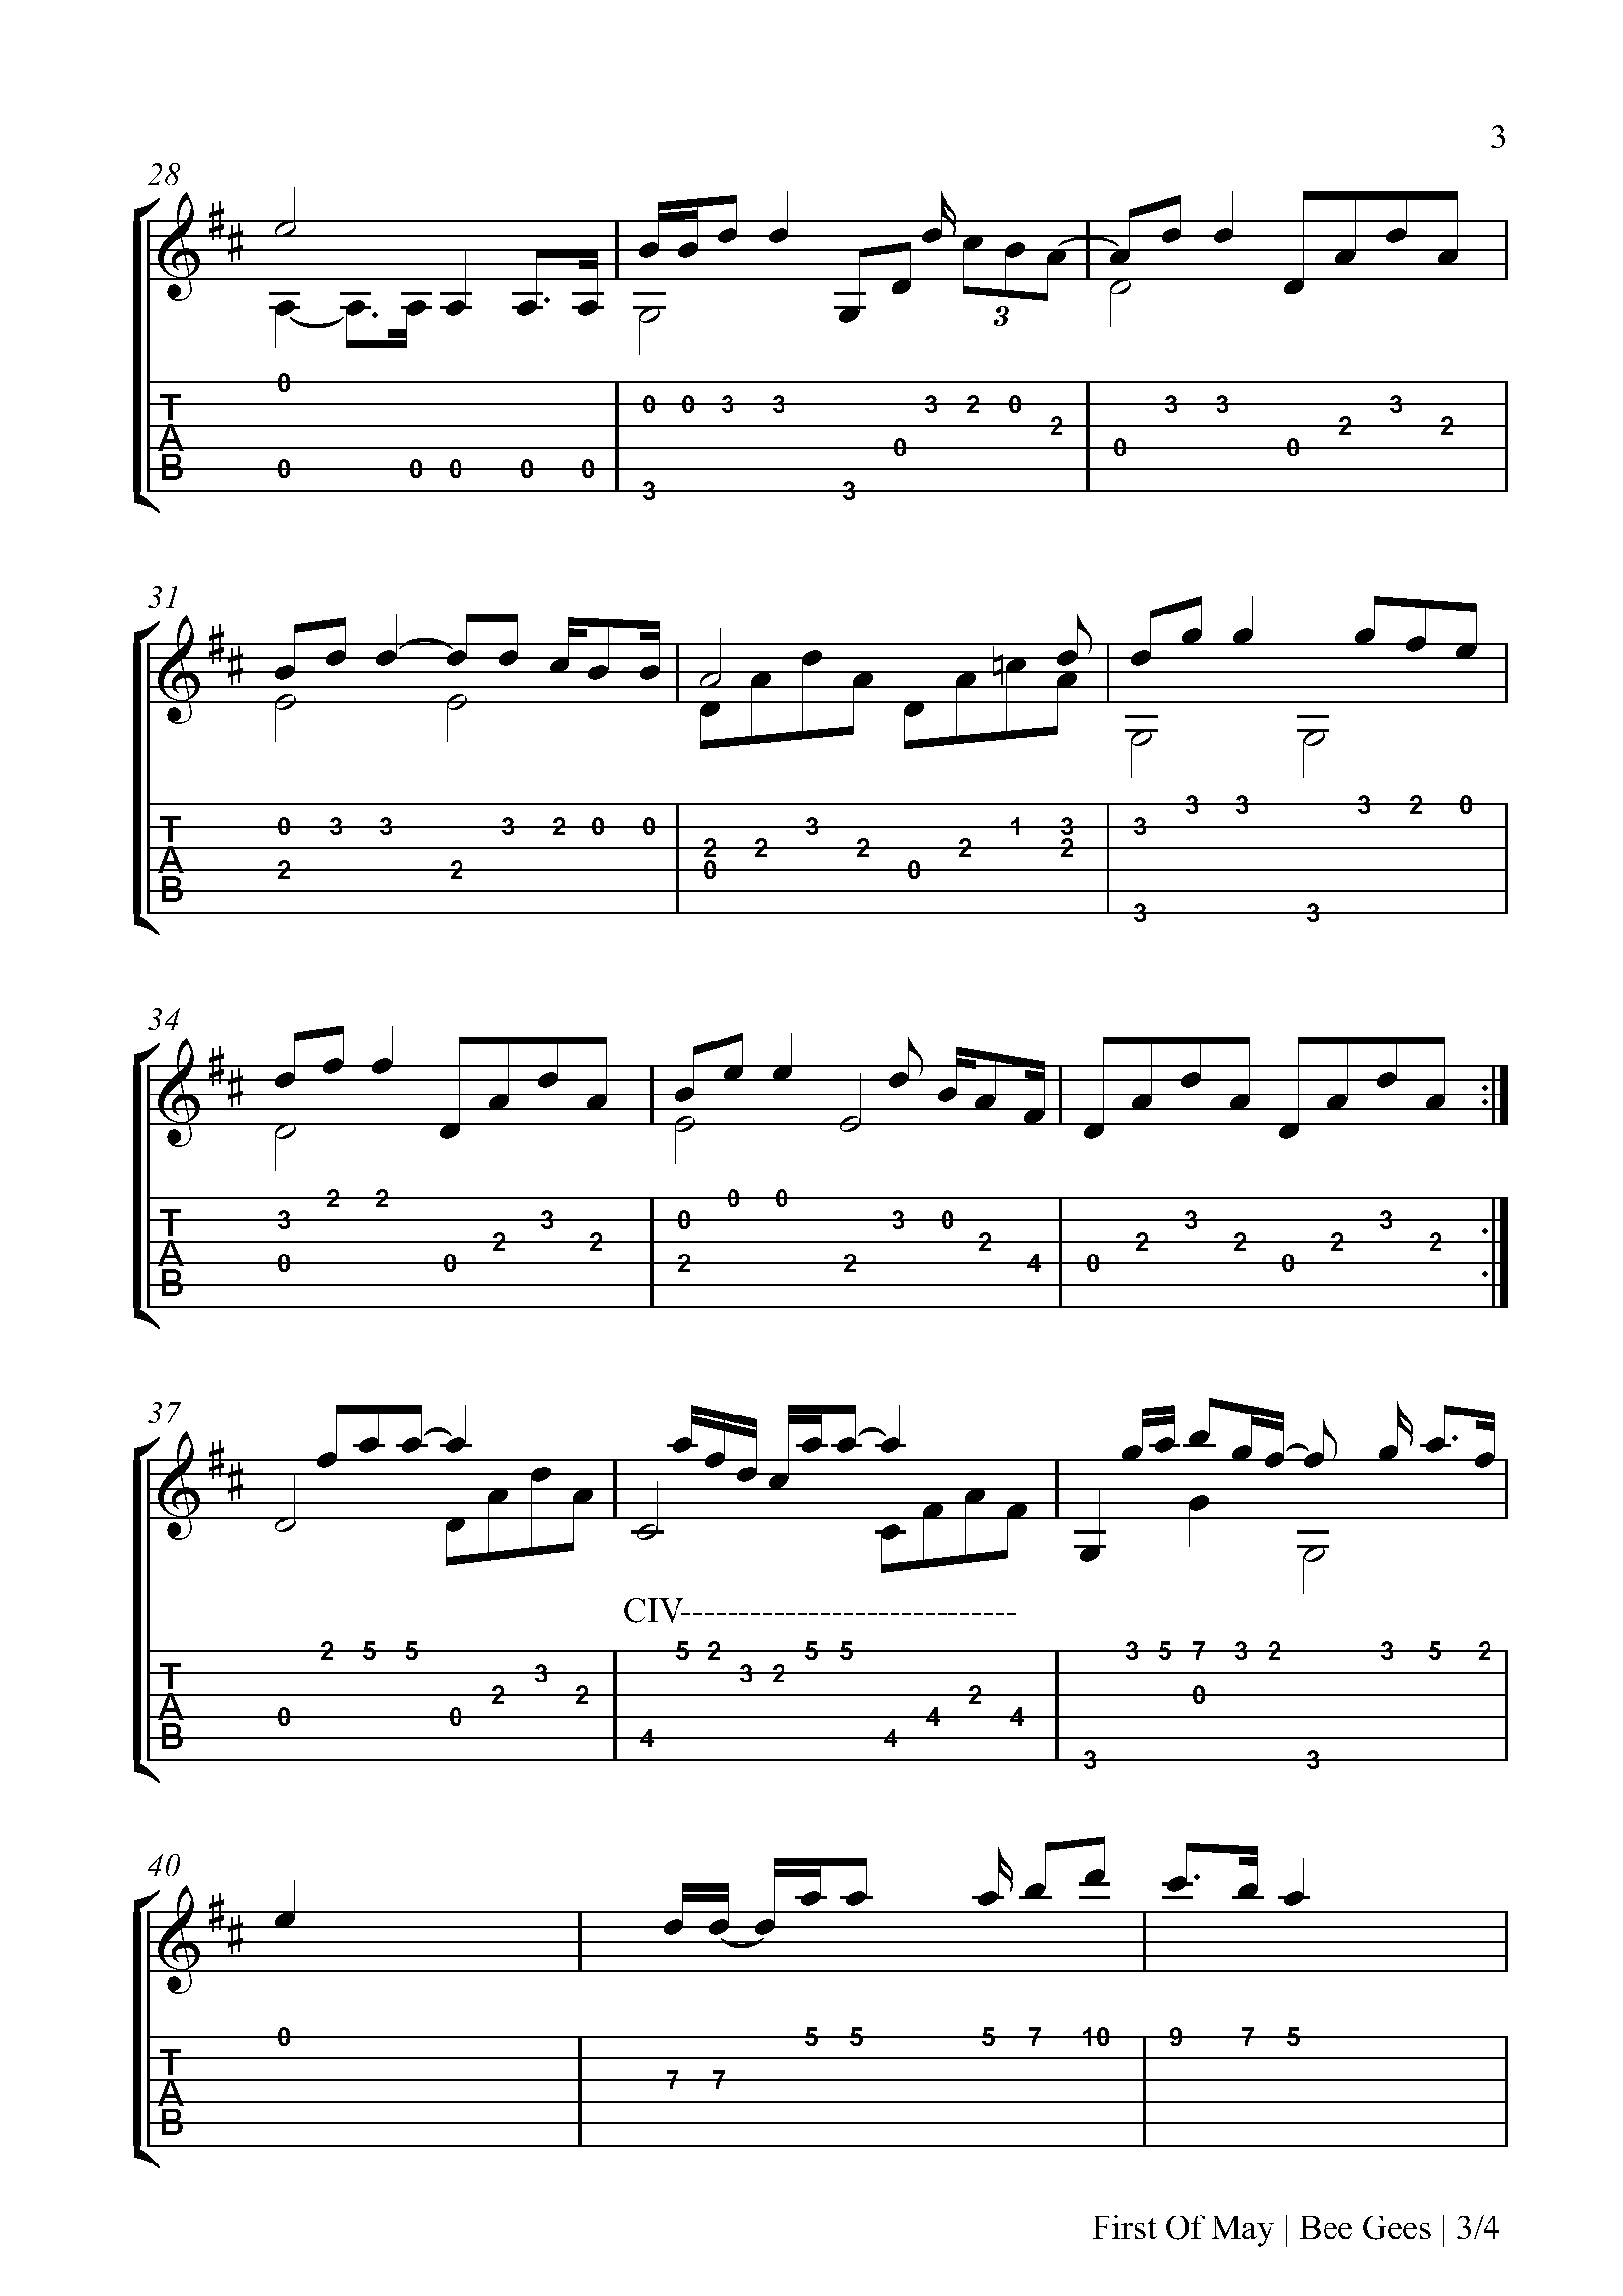 First Of May Fingerstyle Tabs